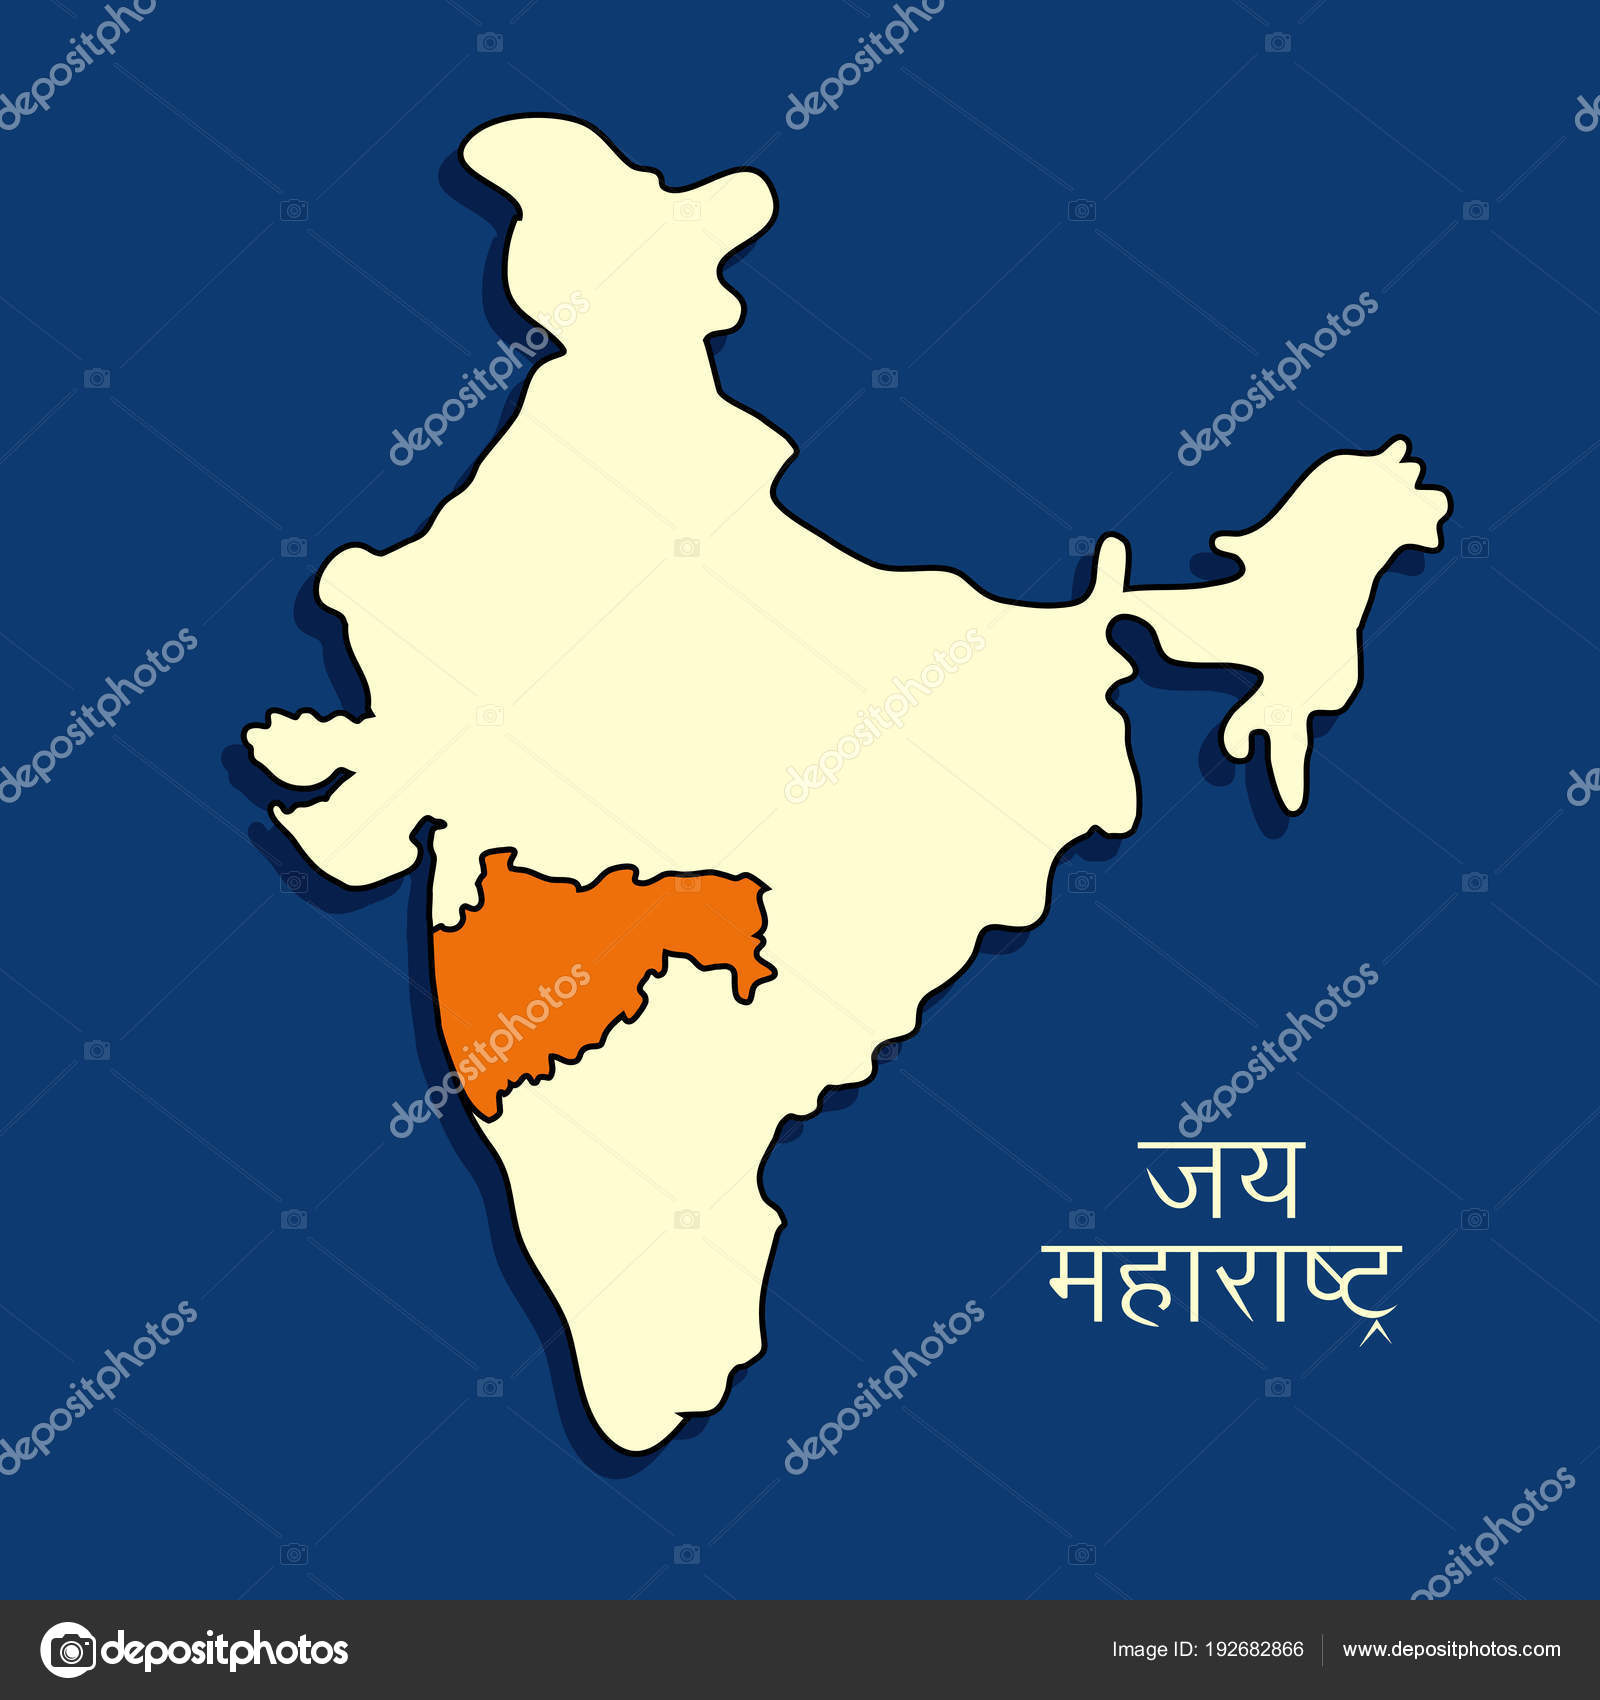 Illustration india map showing indian state maharashtra hindi text illustration india map showing indian state maharashtra hindi text jai stock vector gumiabroncs Gallery